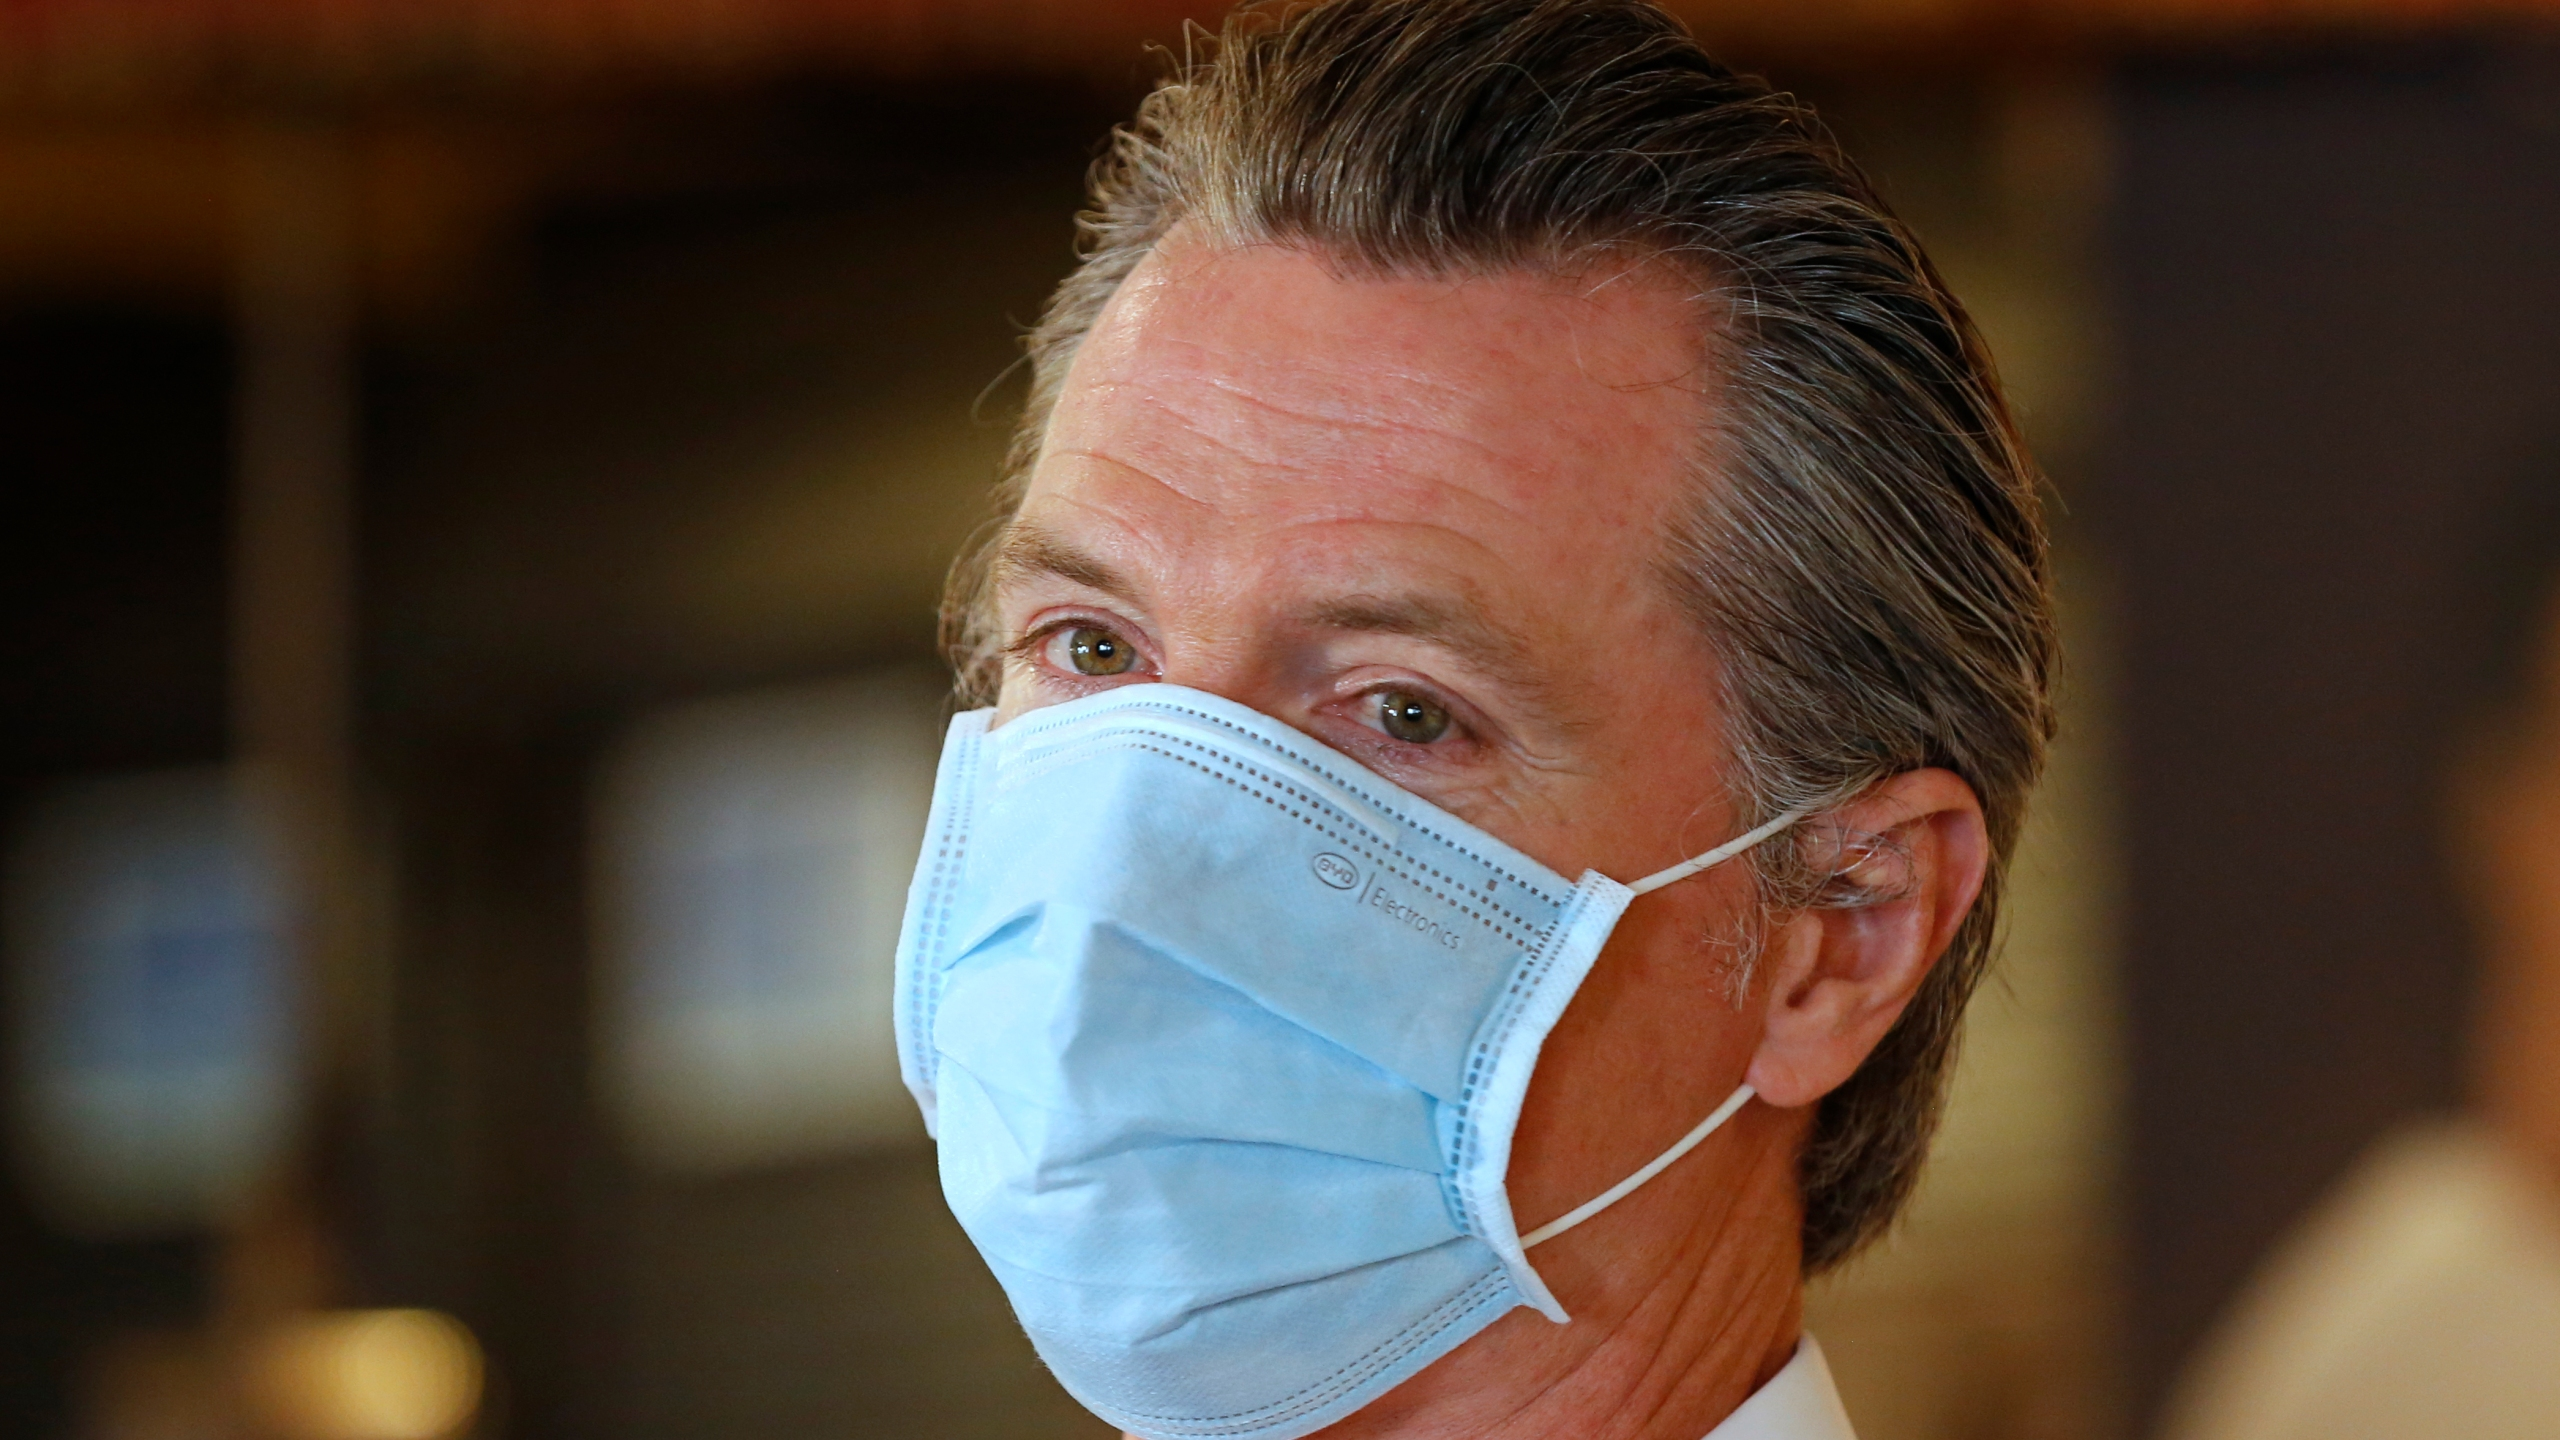 In this June 19, 2020, file photo, California Gov. Gavin Newsom, wears a face mask as he answers a reporter's question during his visit to the Queen Sheba Ethiopian Cuisine restaurant in Sacramento, Calif. Newsom implored people Monday, June 22, 2020, to wear face coverings to protect against the coronavirus and allow businesses to safely open after several days in which the state saw its highest virus hospitalizations and number of infections to date. (AP Photo/Rich Pedroncelli, Pool)